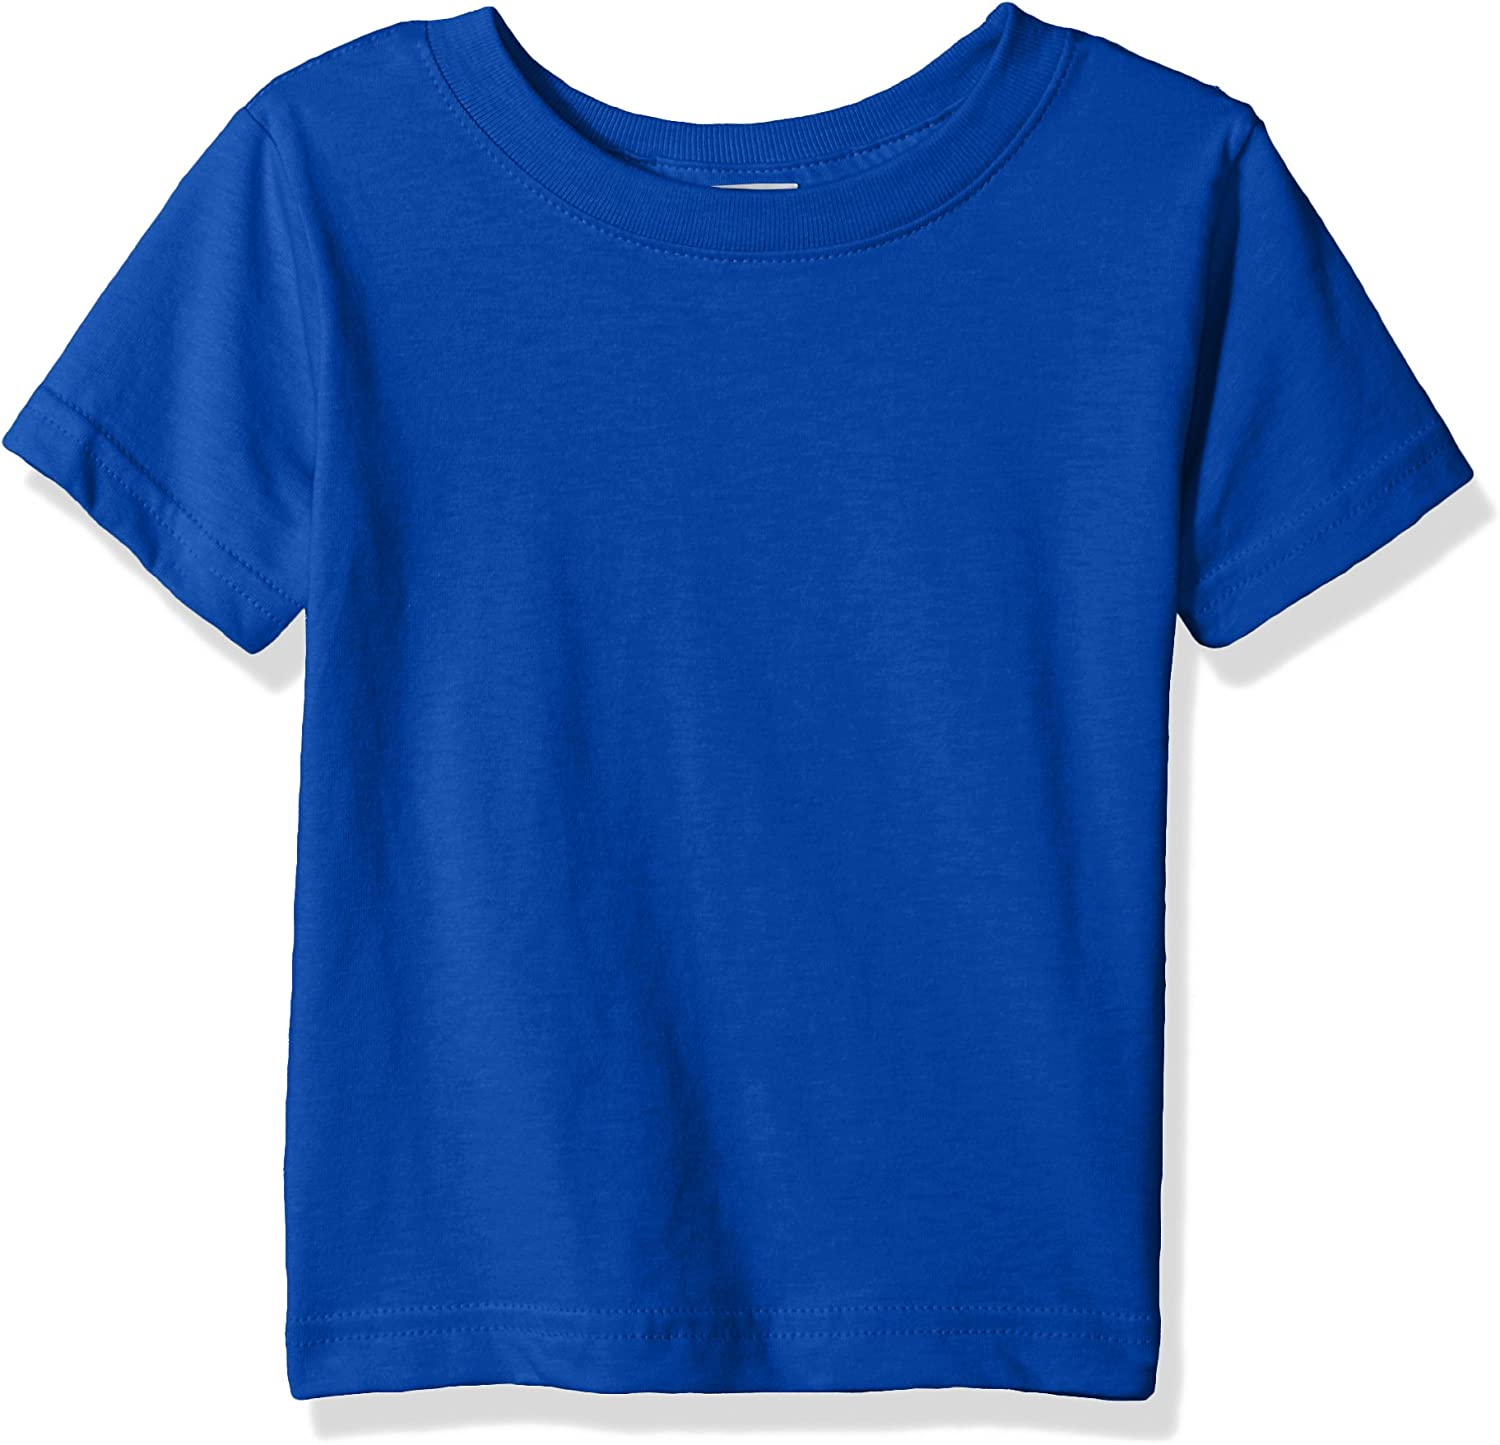 Clementine Baby Boys Infant Fine Durable Jersey Tees Short Sleeve Crewneck T-Shirt